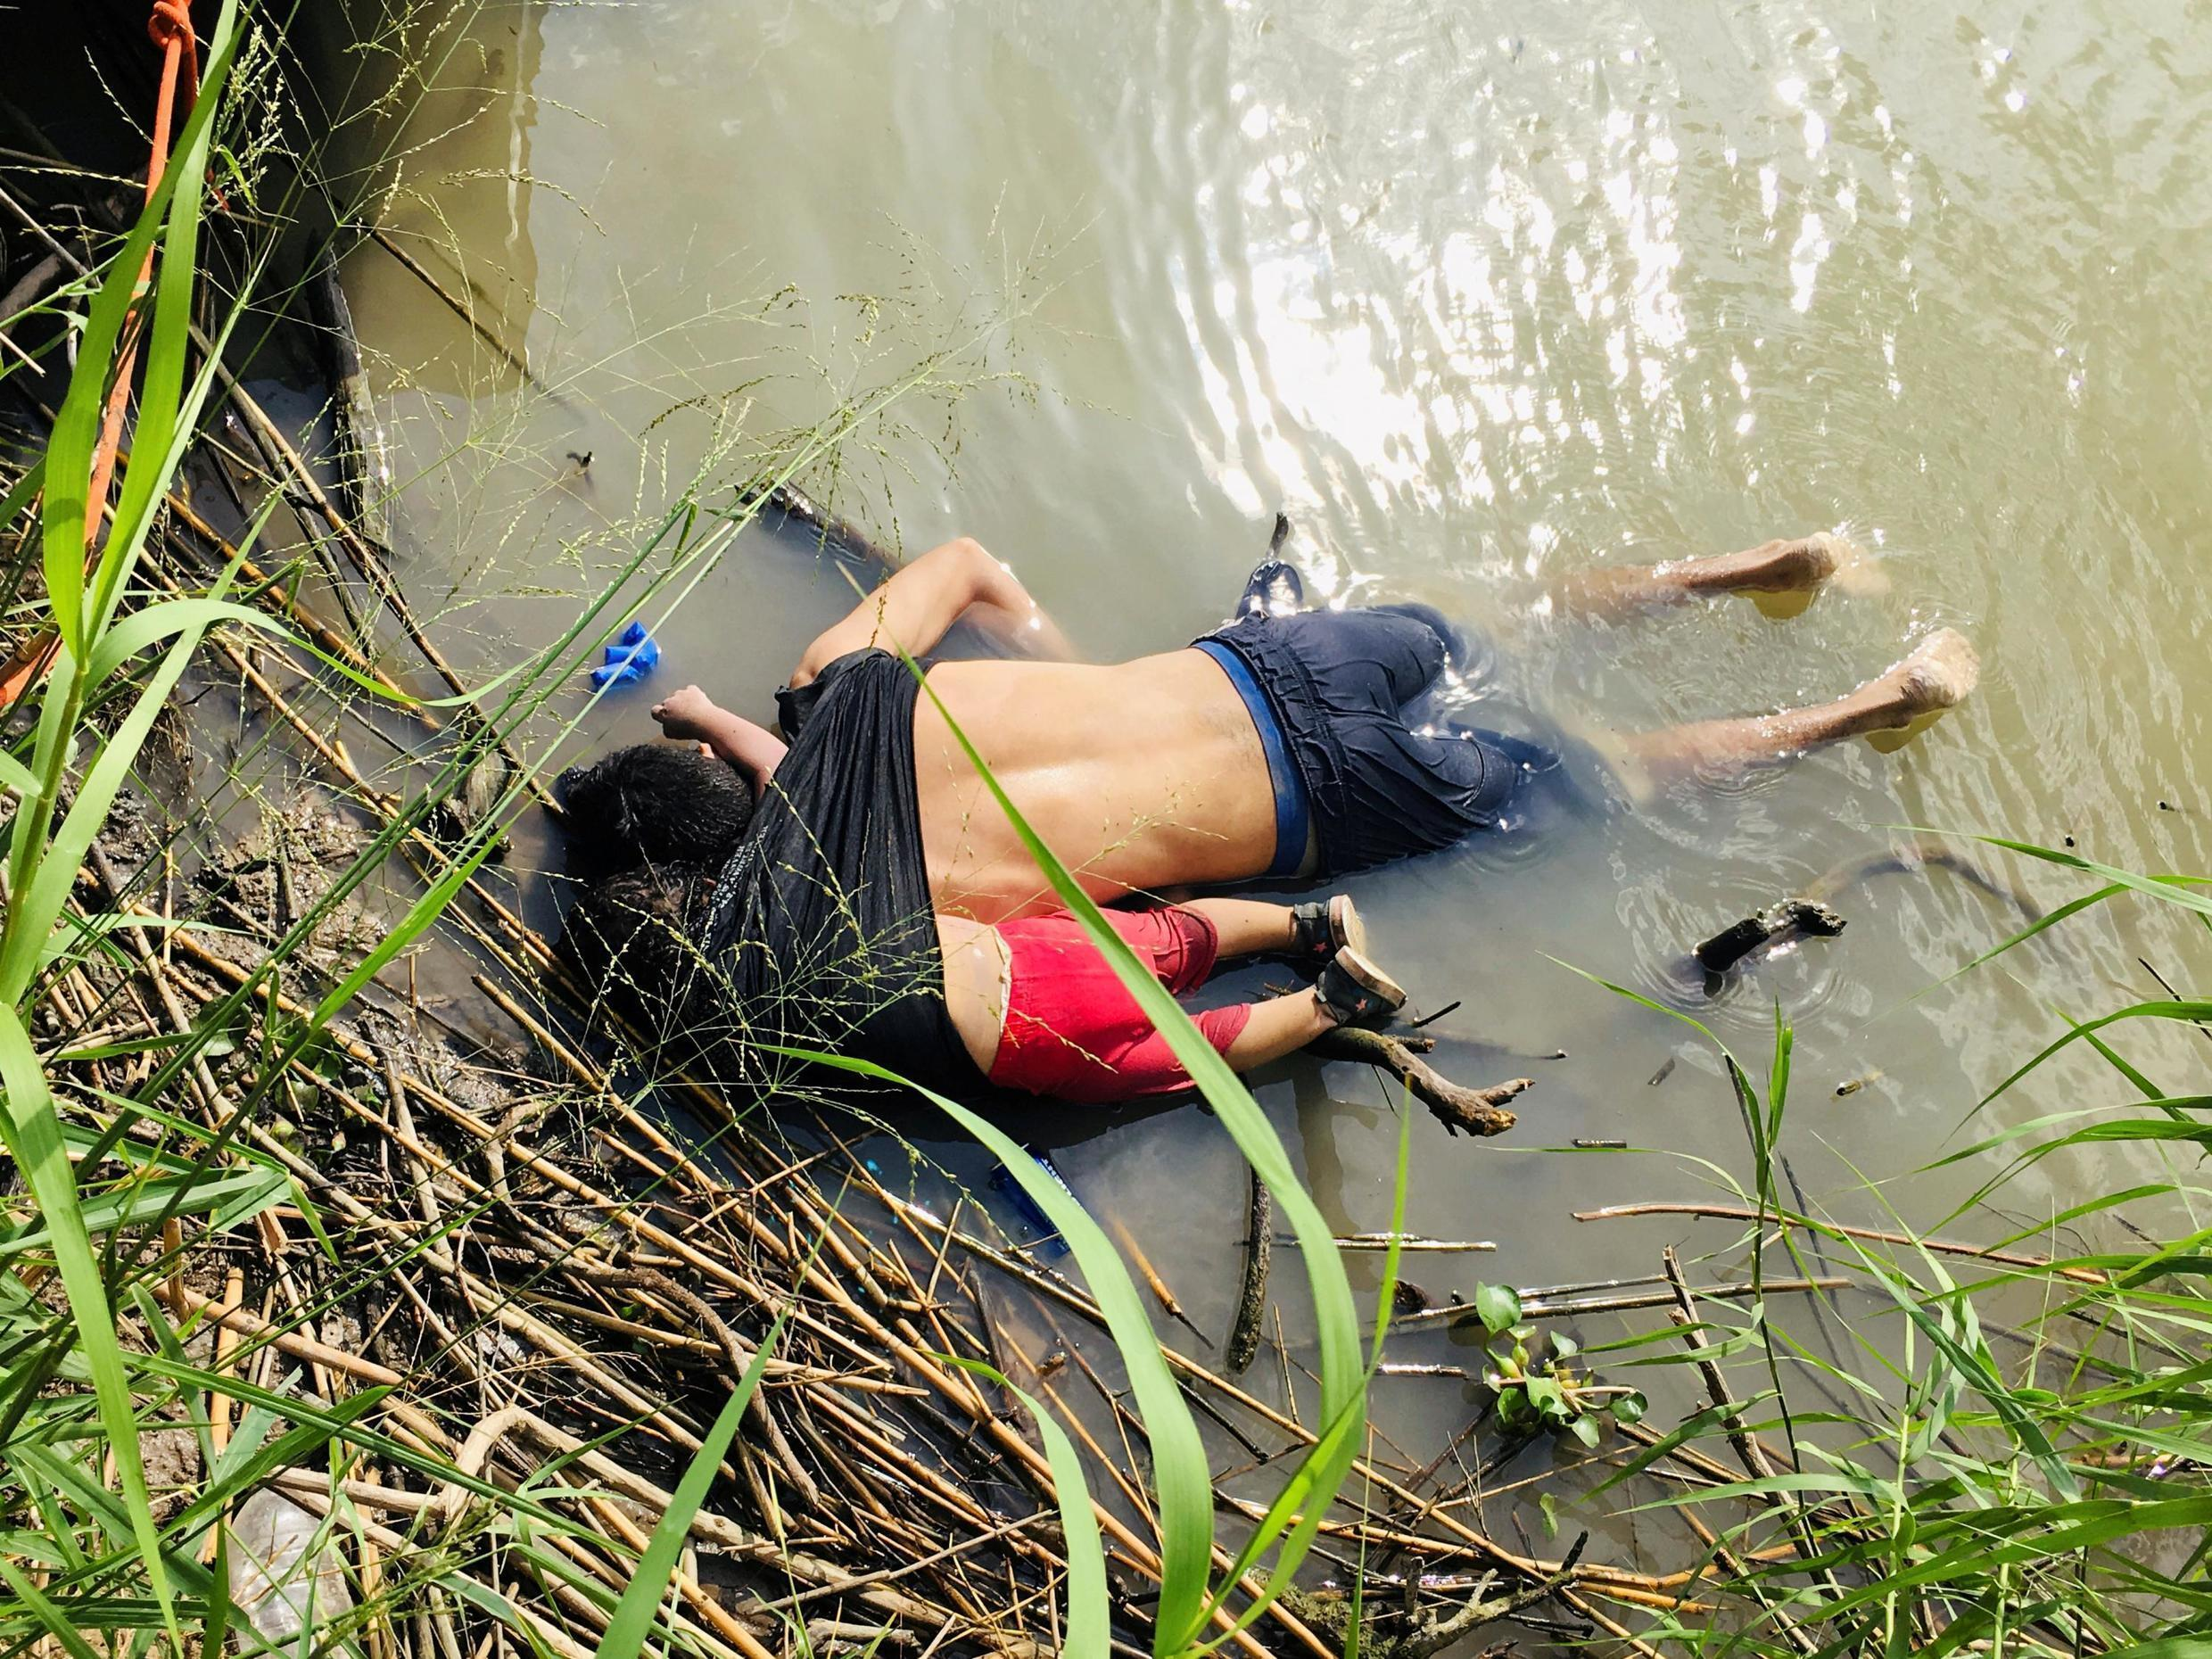 The bodies of Salvadoran migrant Oscar Alberto Martinez Ramirez and his daughter Valeria lie in the Rio Grande River after drowning on their journey to the US, Mexico June 24, 2019